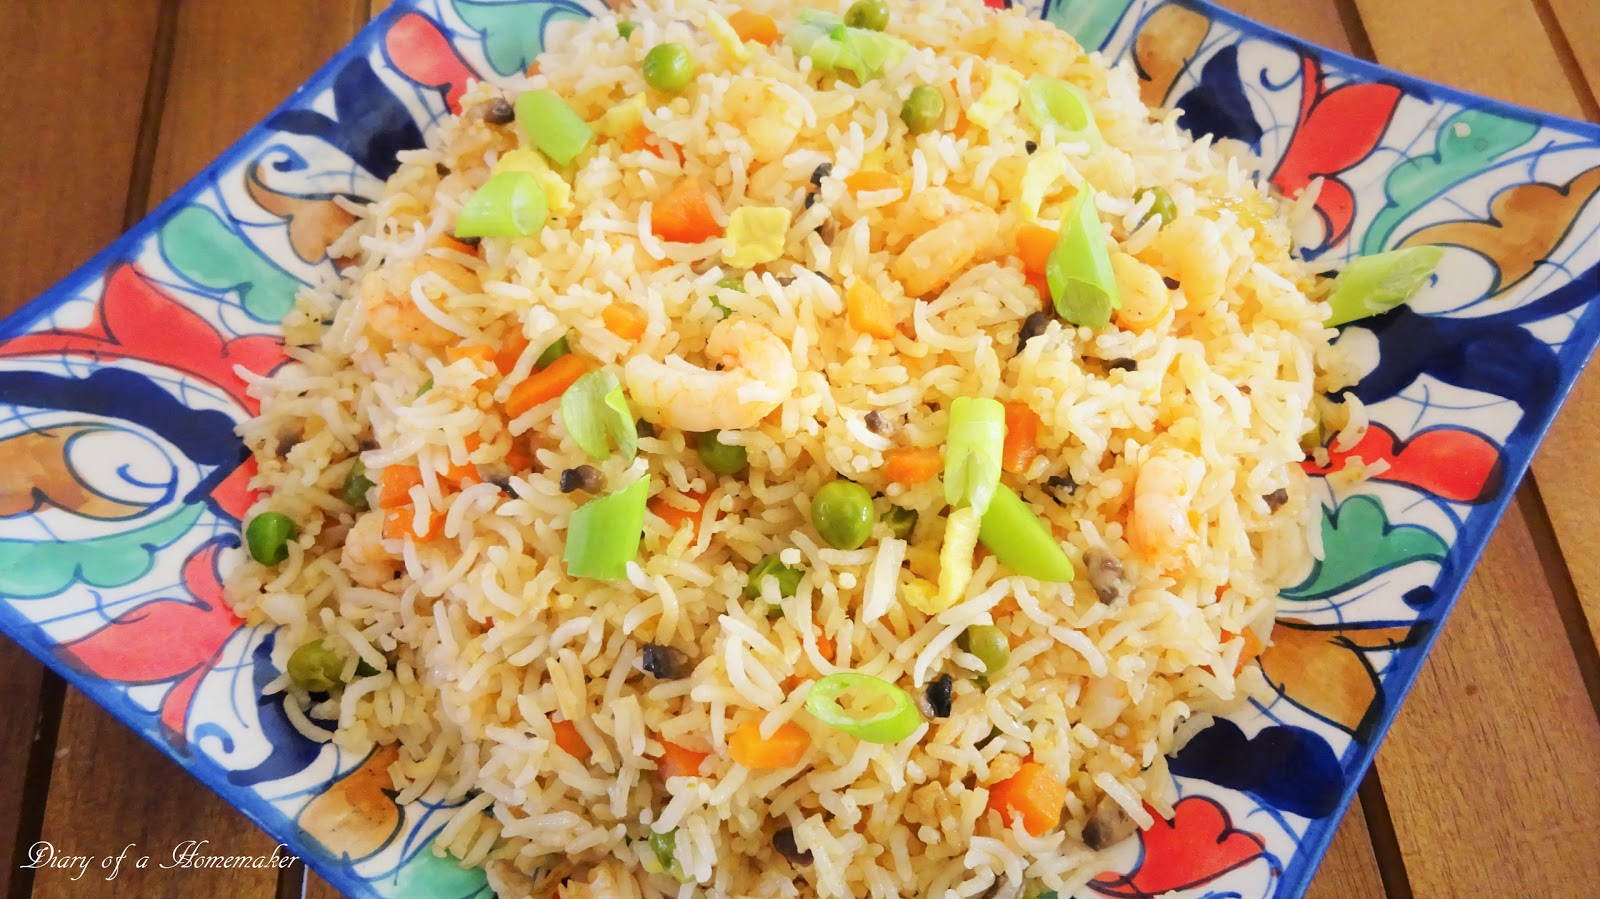 Indian food recipes indian recipes desi food desi recipes prawn stir fried rice easy quick one pot forumfinder Images